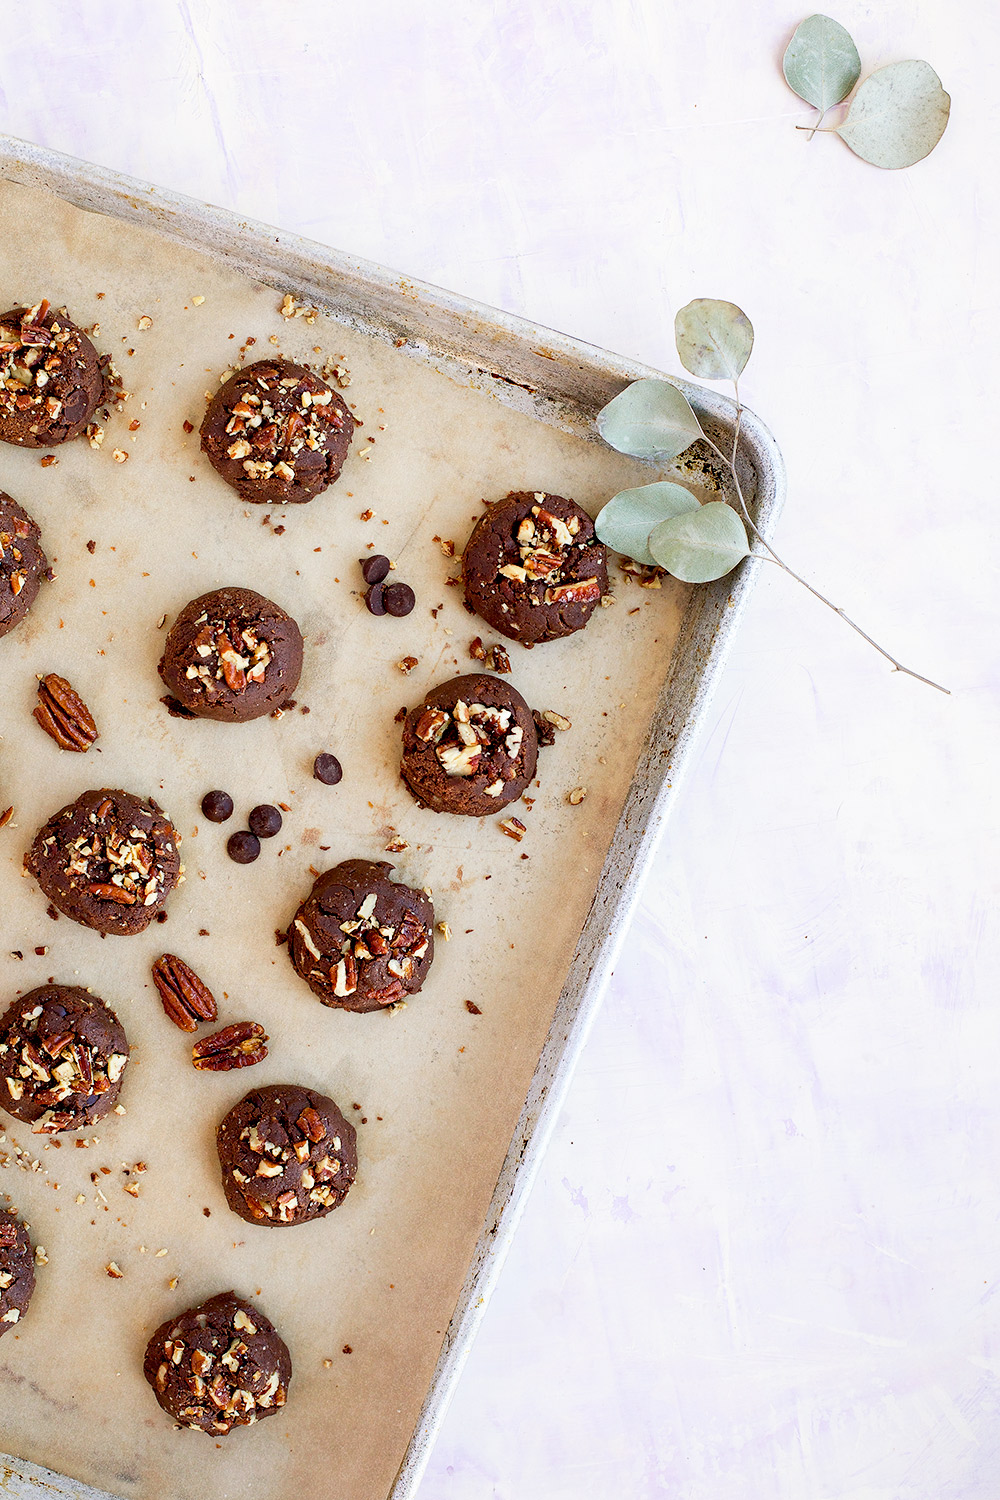 Caramelized Pecan Chocolate Chip Cookies